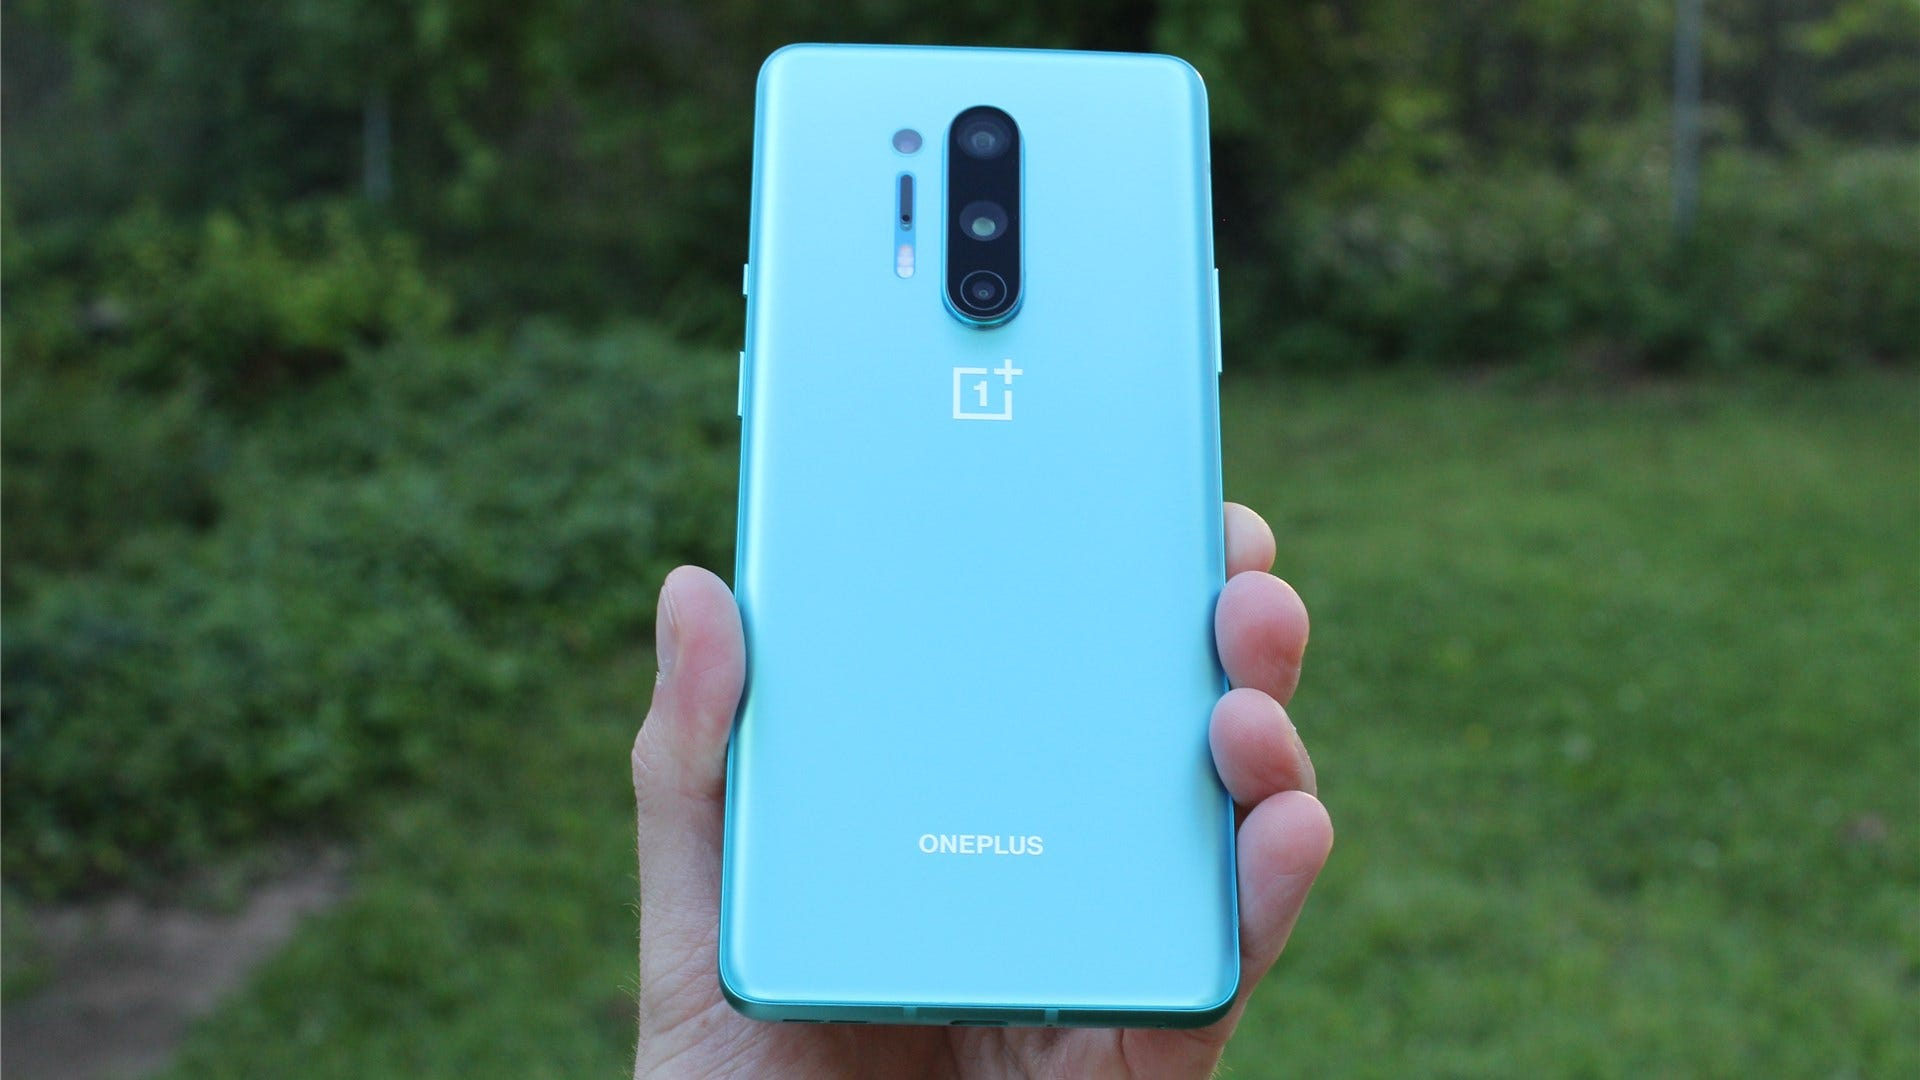 The OnePlus 8 Pro in Glacial Green.